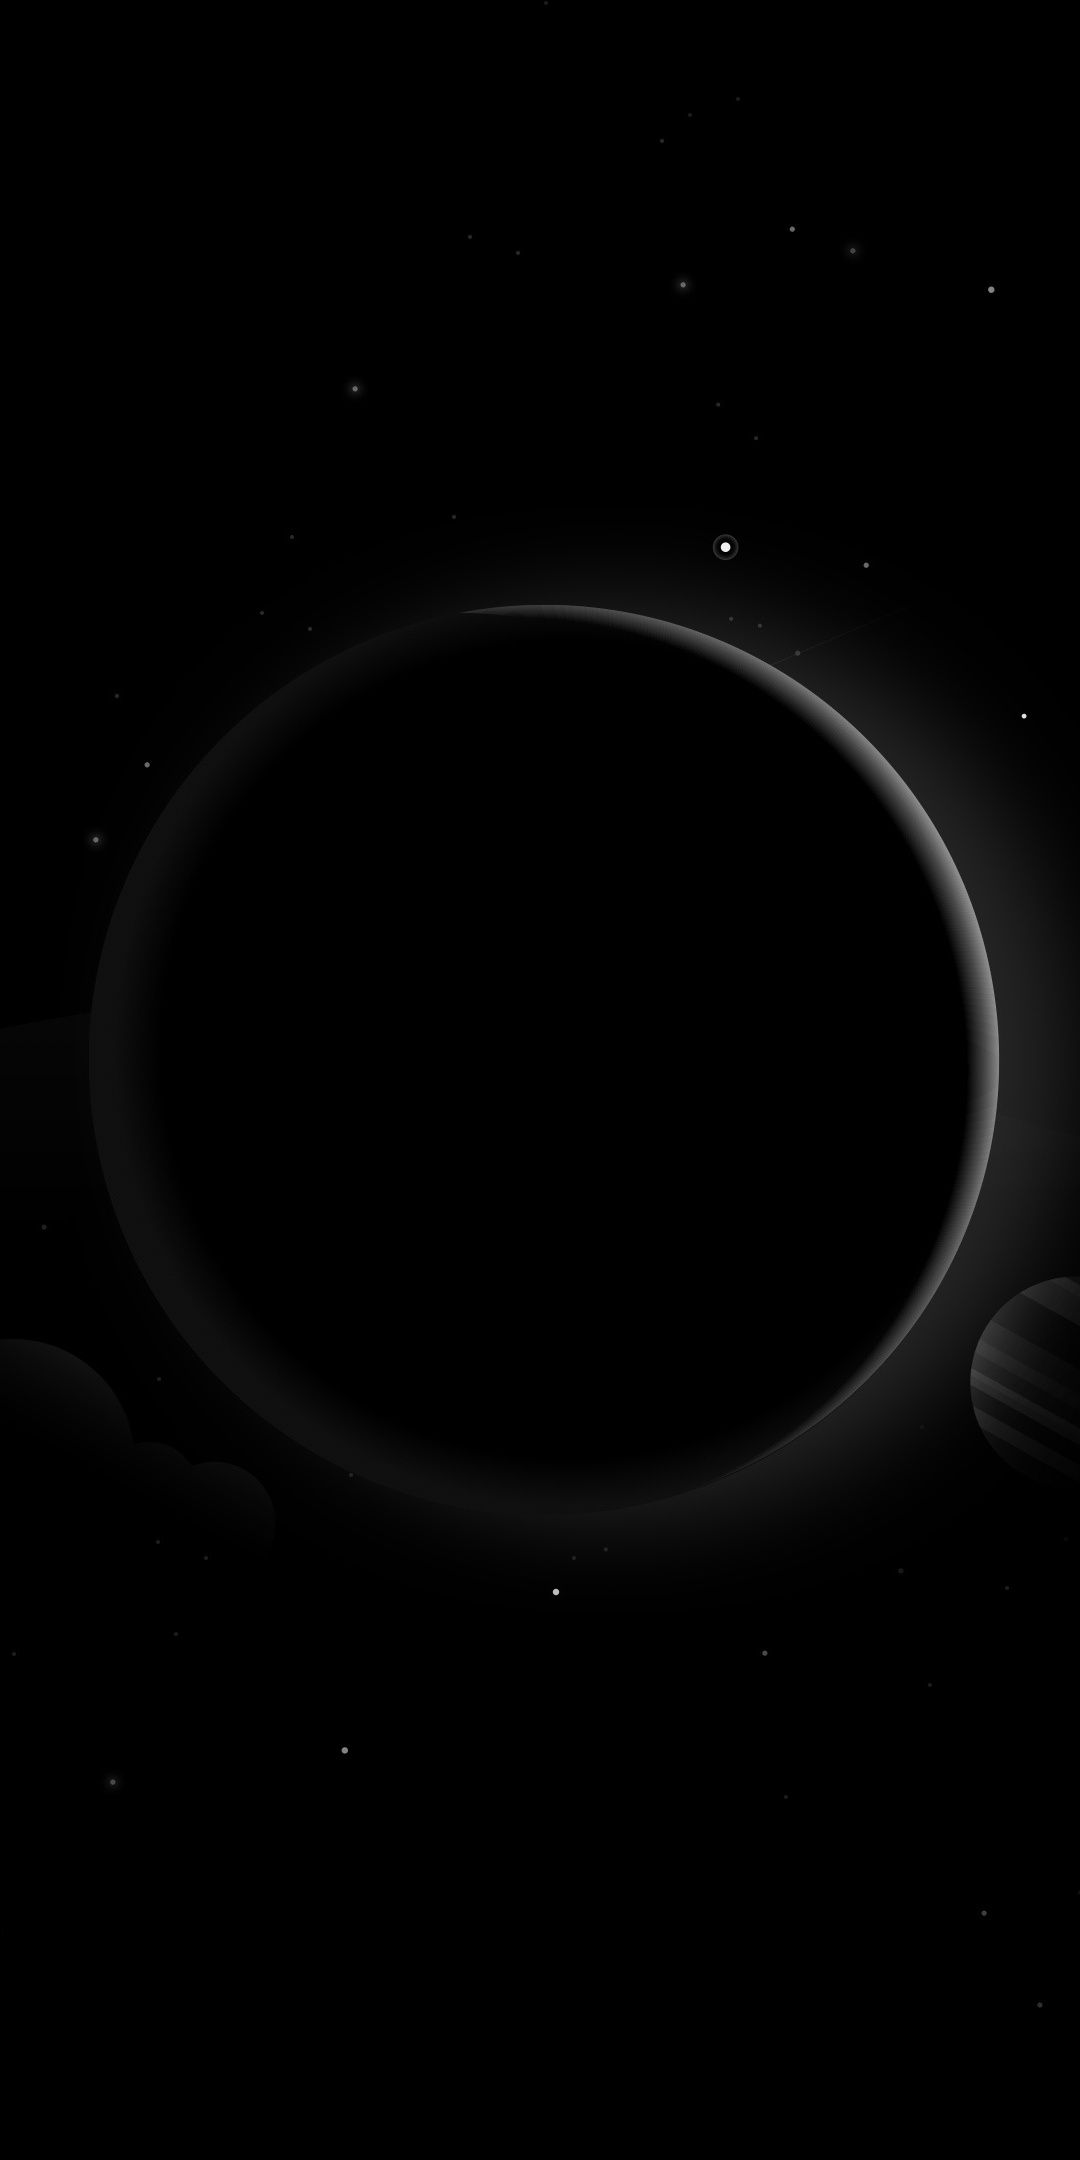 Space Dark Planets Abstract 1080x2160 Wallpaper Planos De Fundo Plano De Fundo Iphone Papel De Parede Android